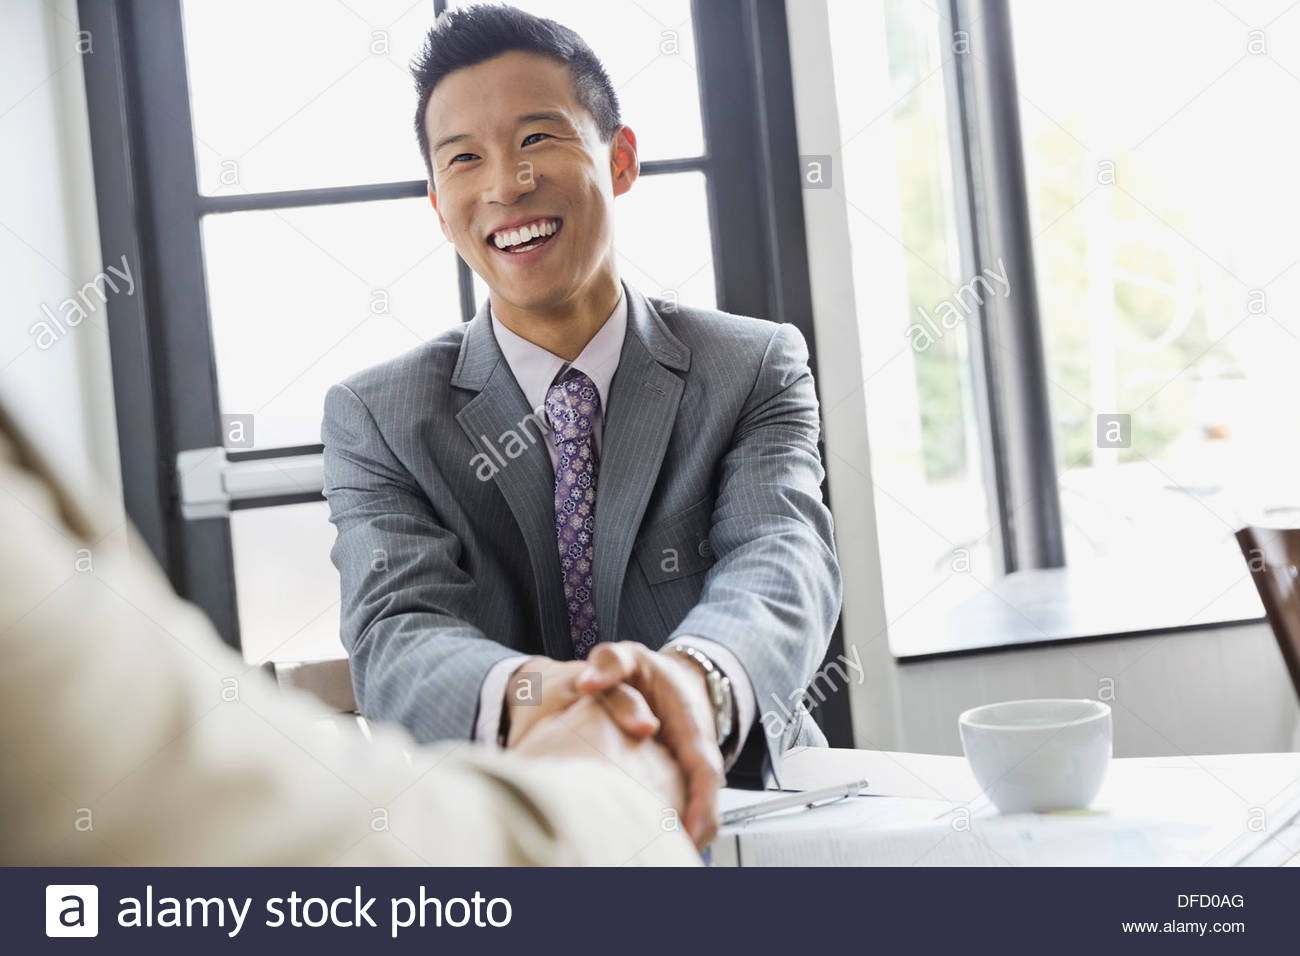 Businessman shaking hands with partner in restaurant Photo Stock